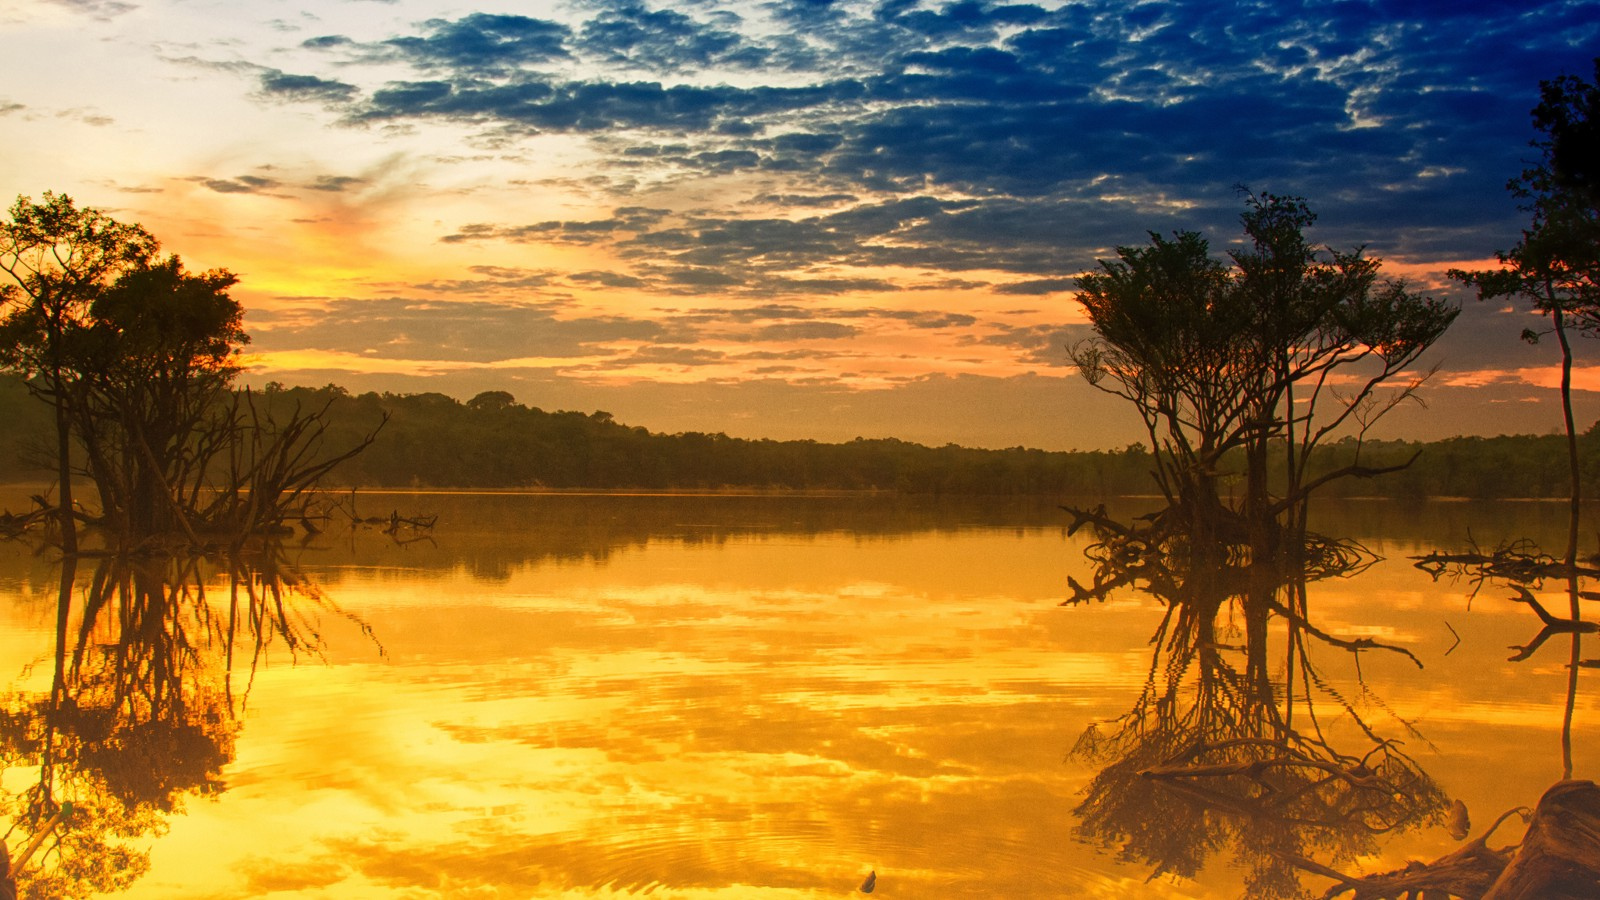 Sunrise in Manaus, Amazon, Brazil